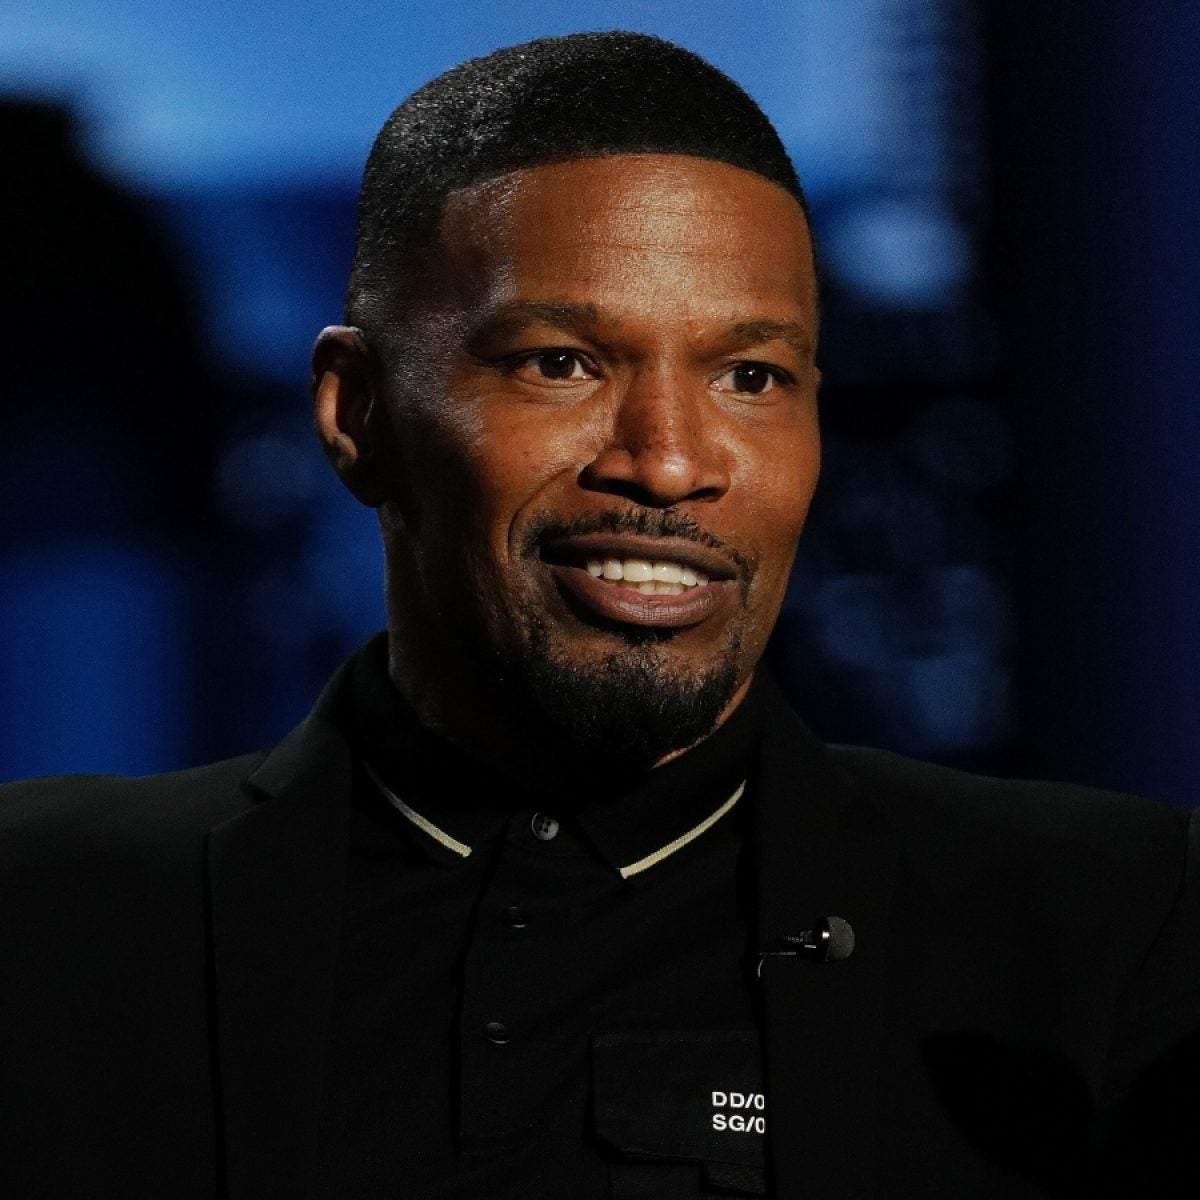 Jamie Foxx On Never Marrying And Why He's Not 'That Dude' Just Because The Mothers Of His Children Aren't Black